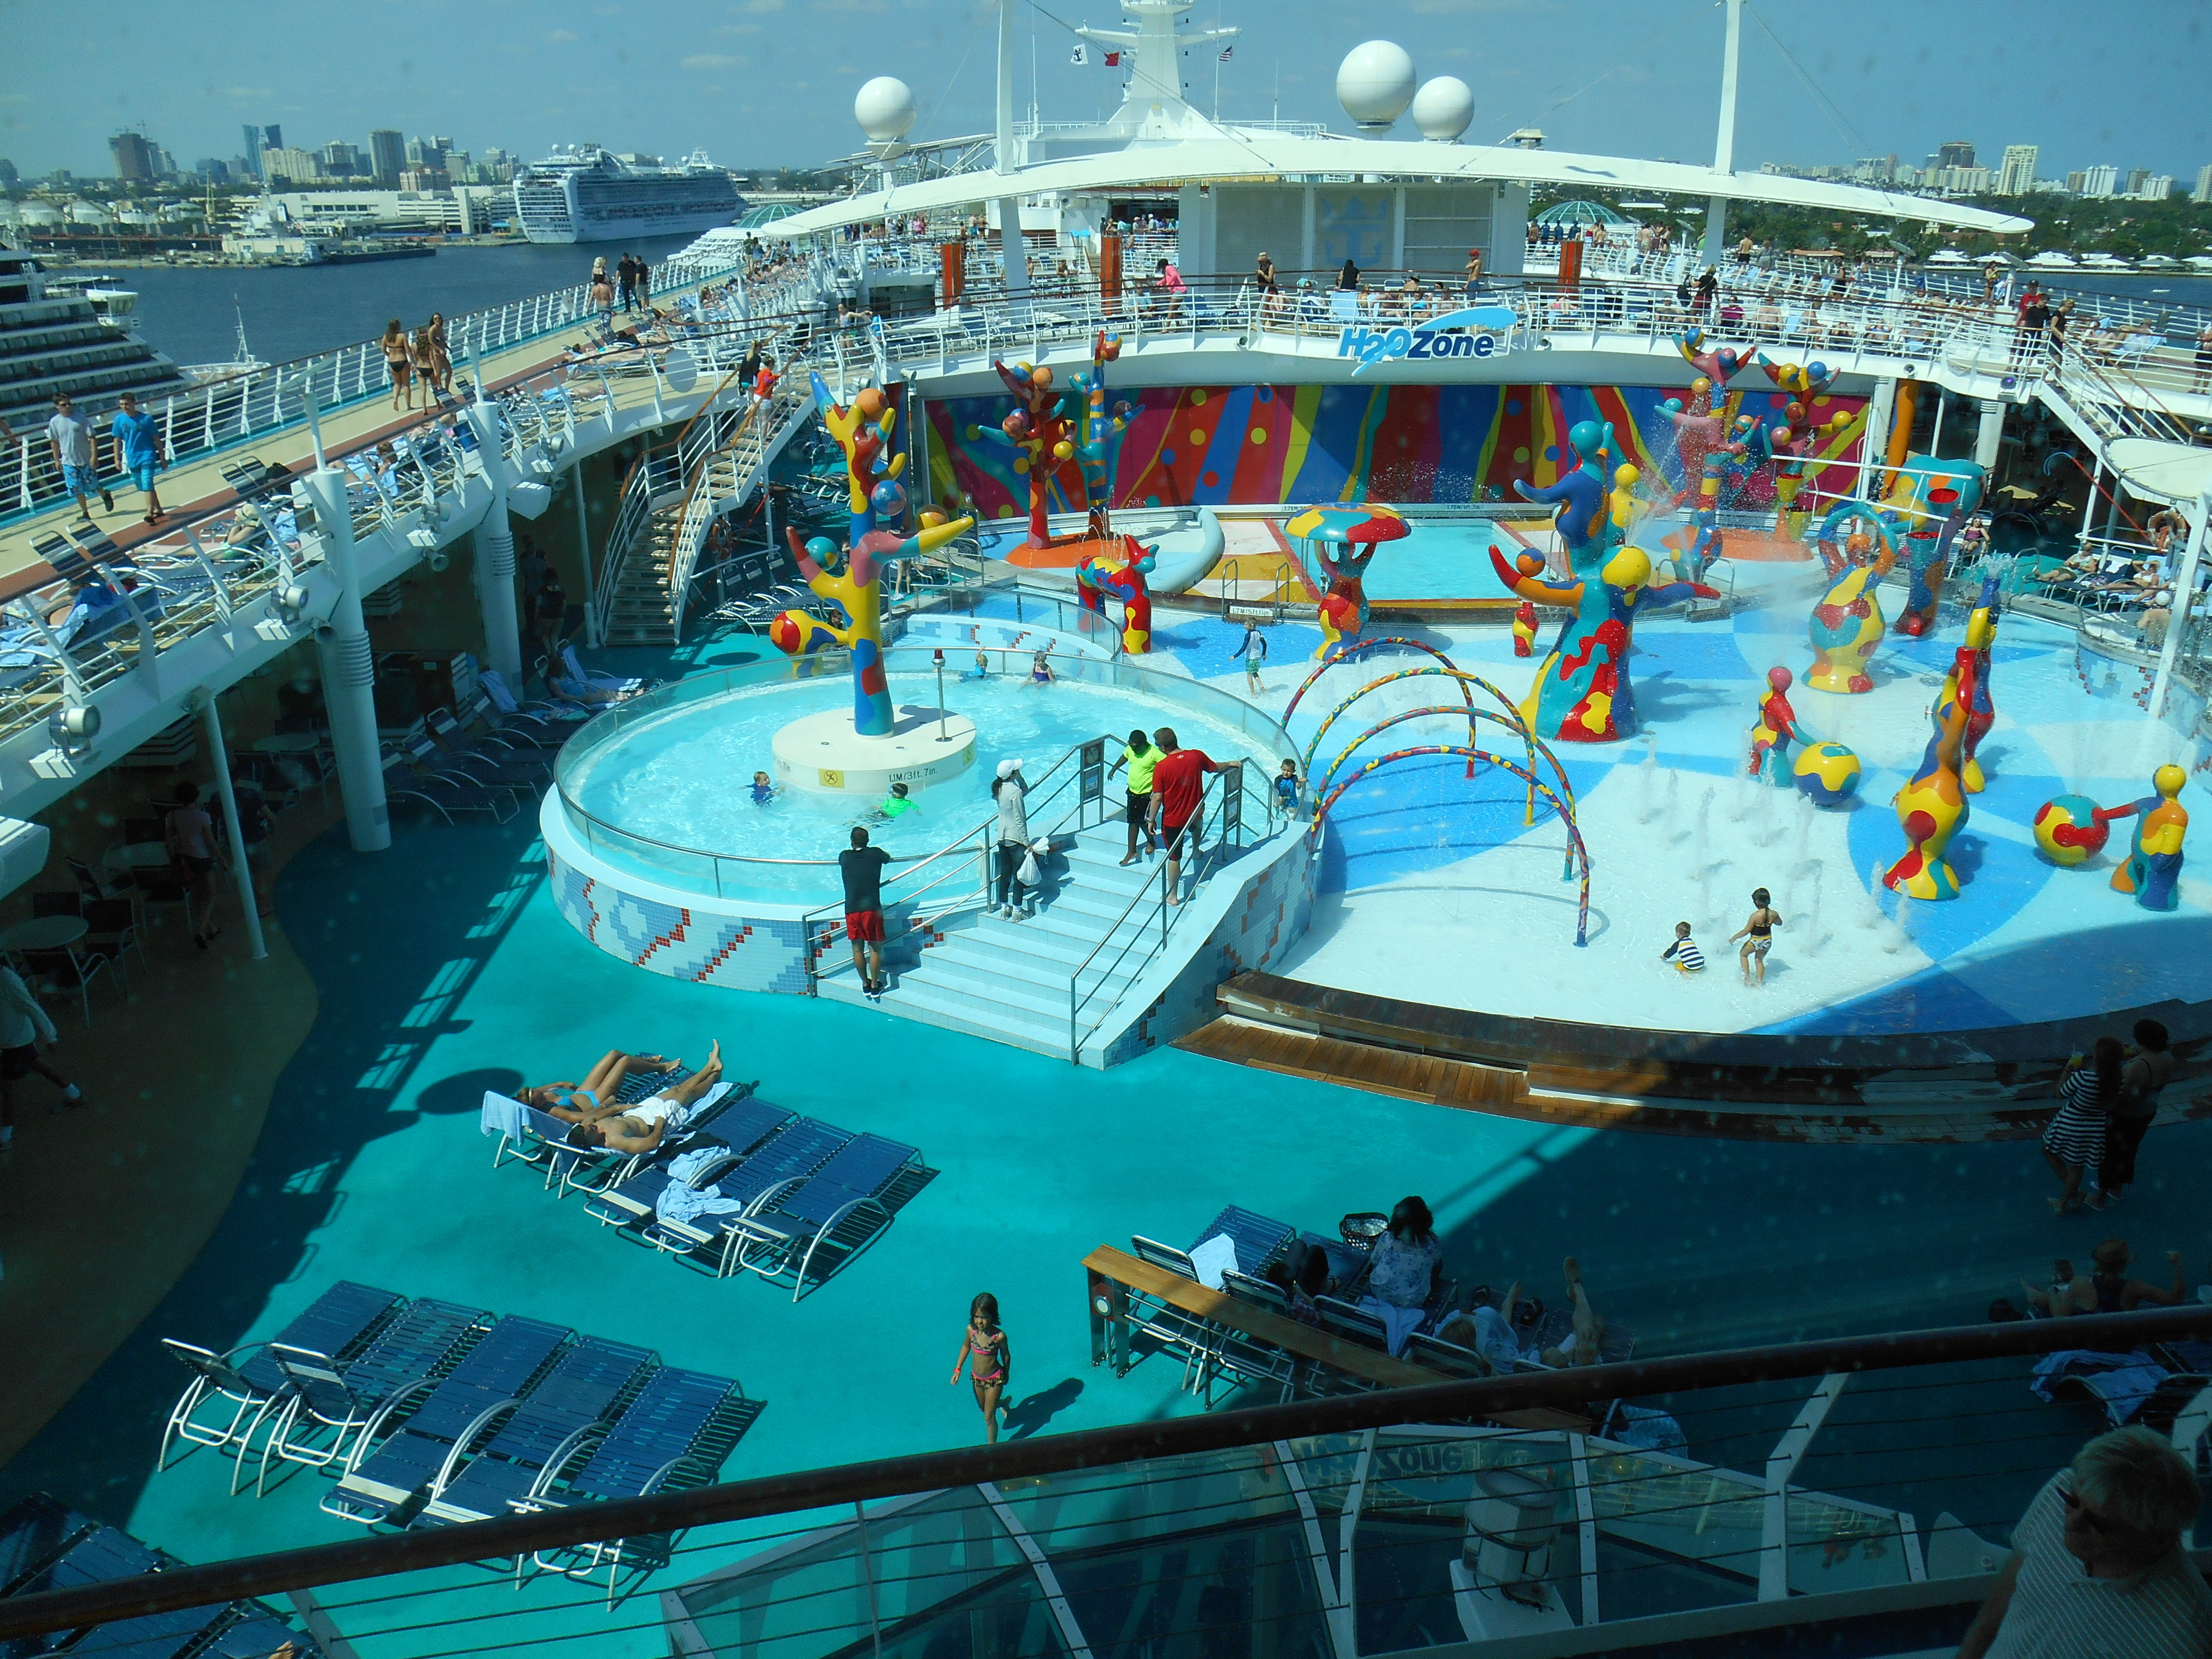 Liberty Of The Seas Cruise Review Mar 10 2014